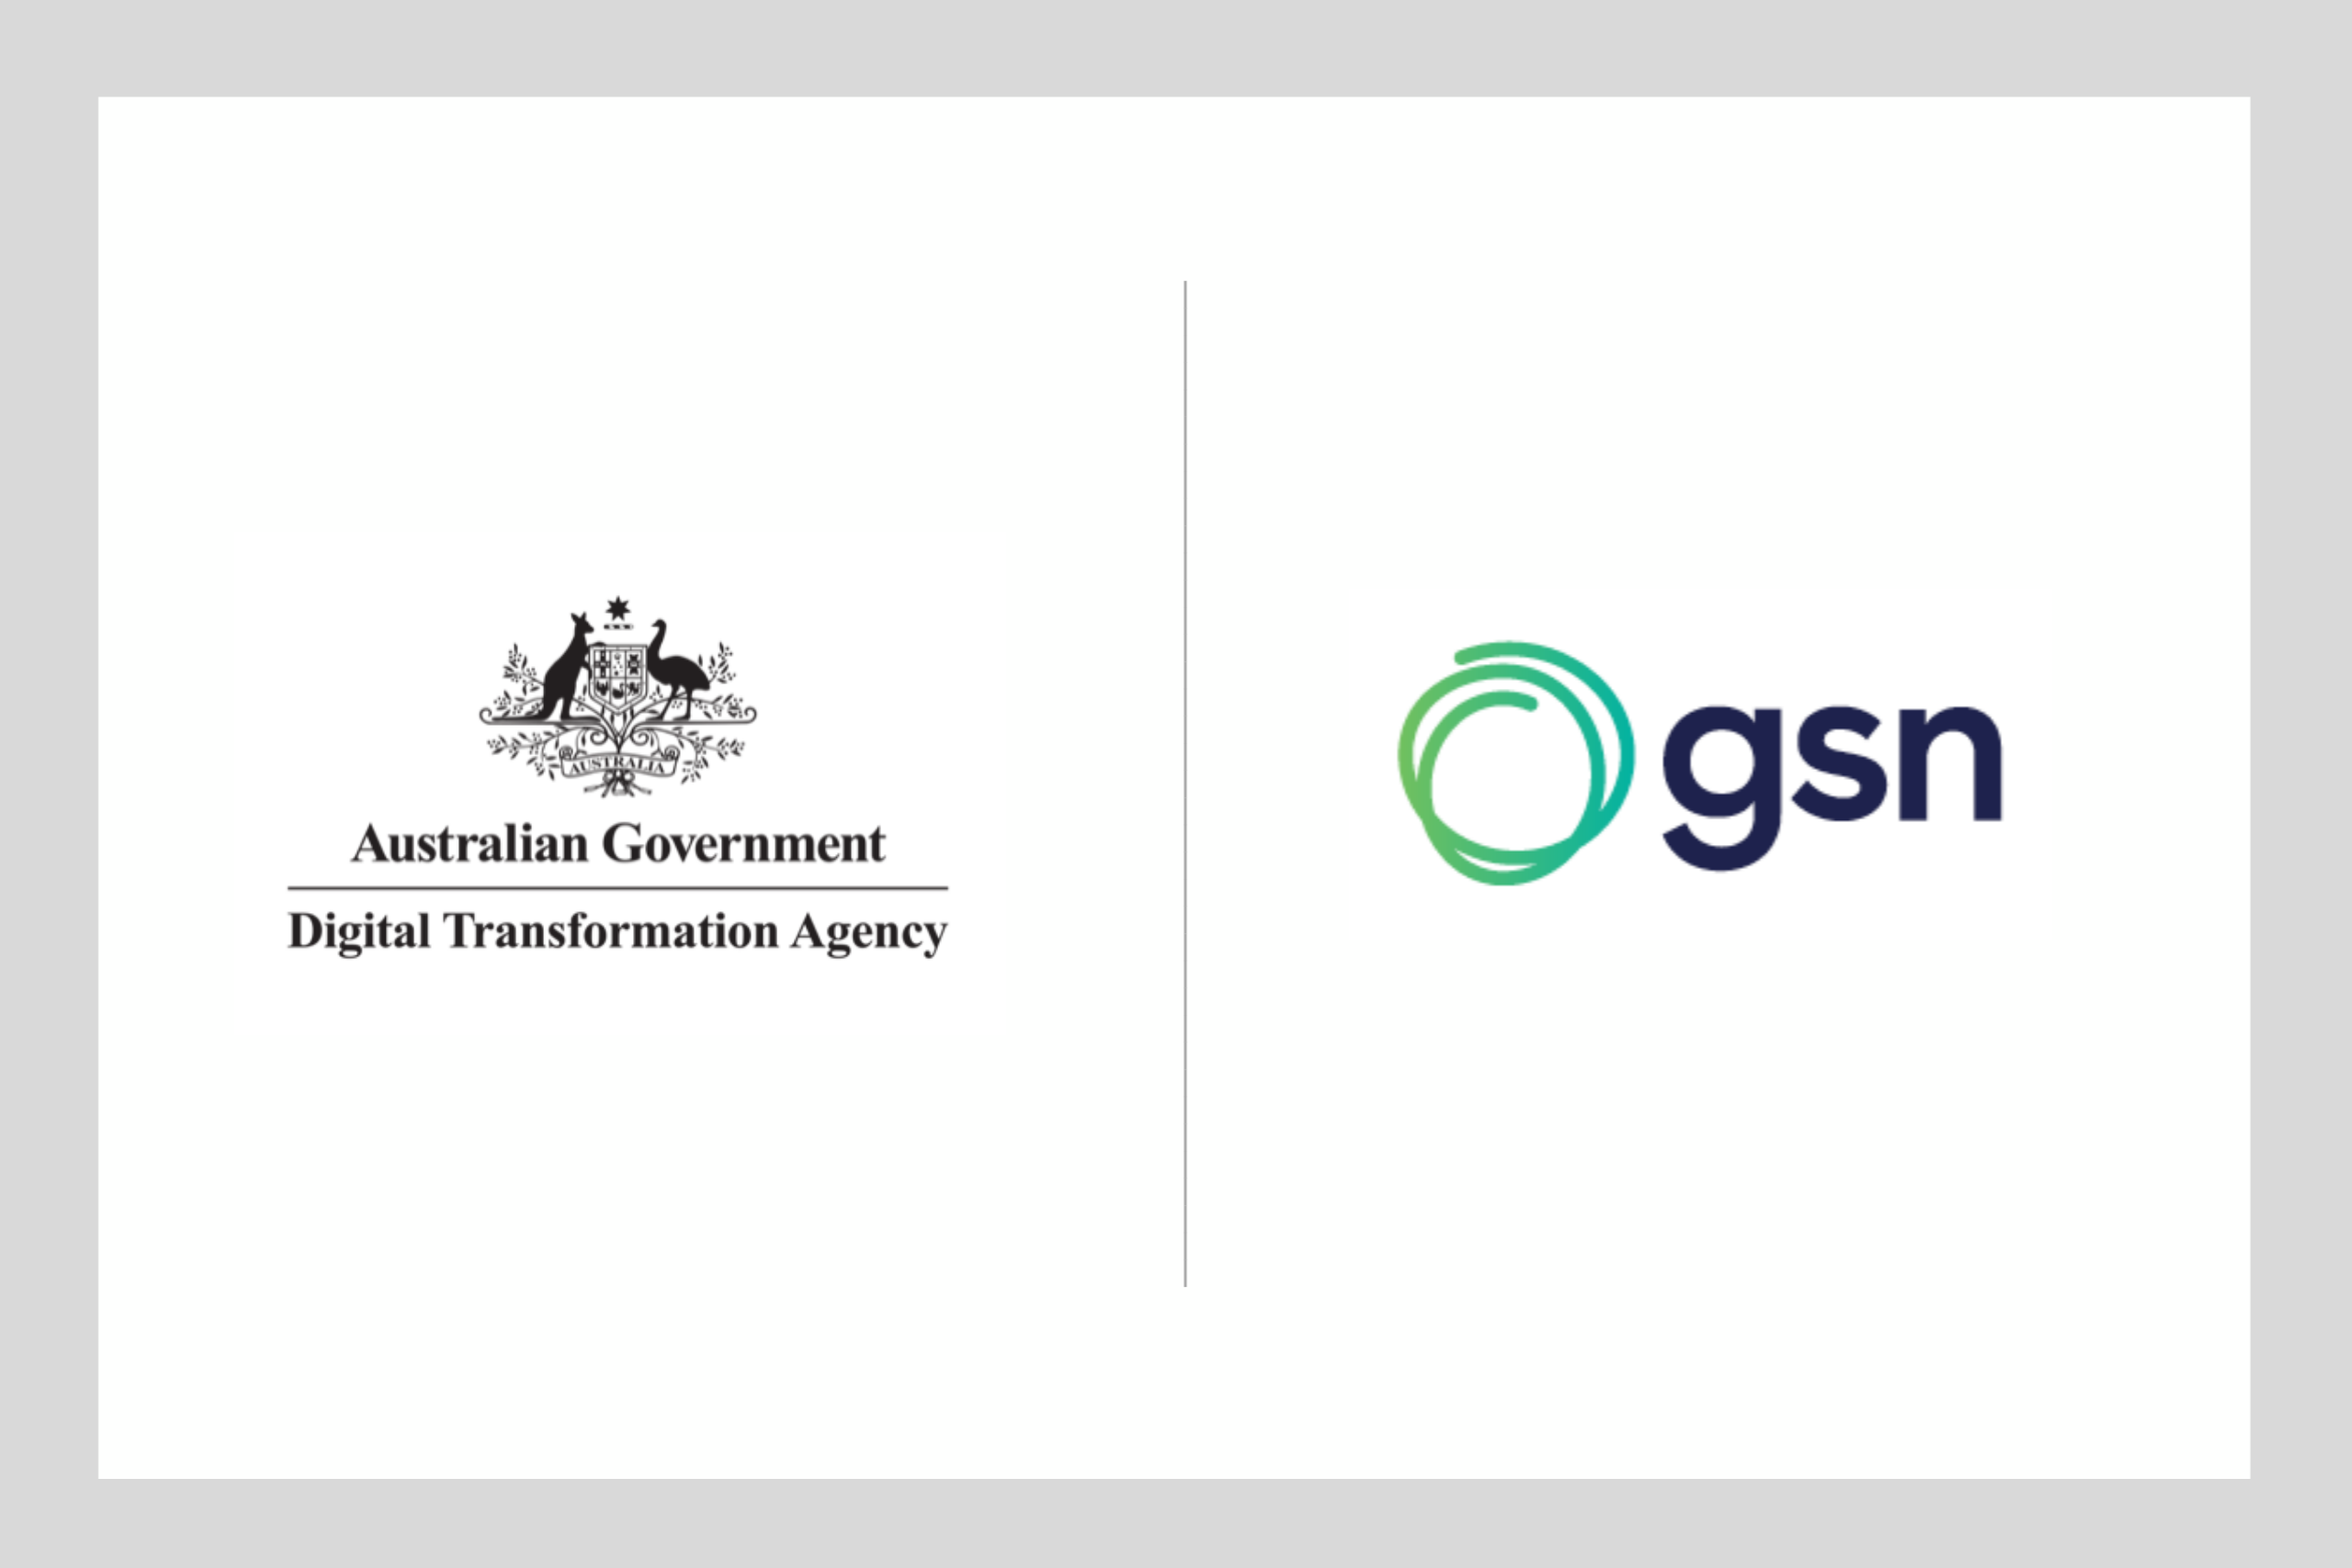 GSN Confirmed As Australian Government Digital Transformation Agency Telecommunications Supplier 2020